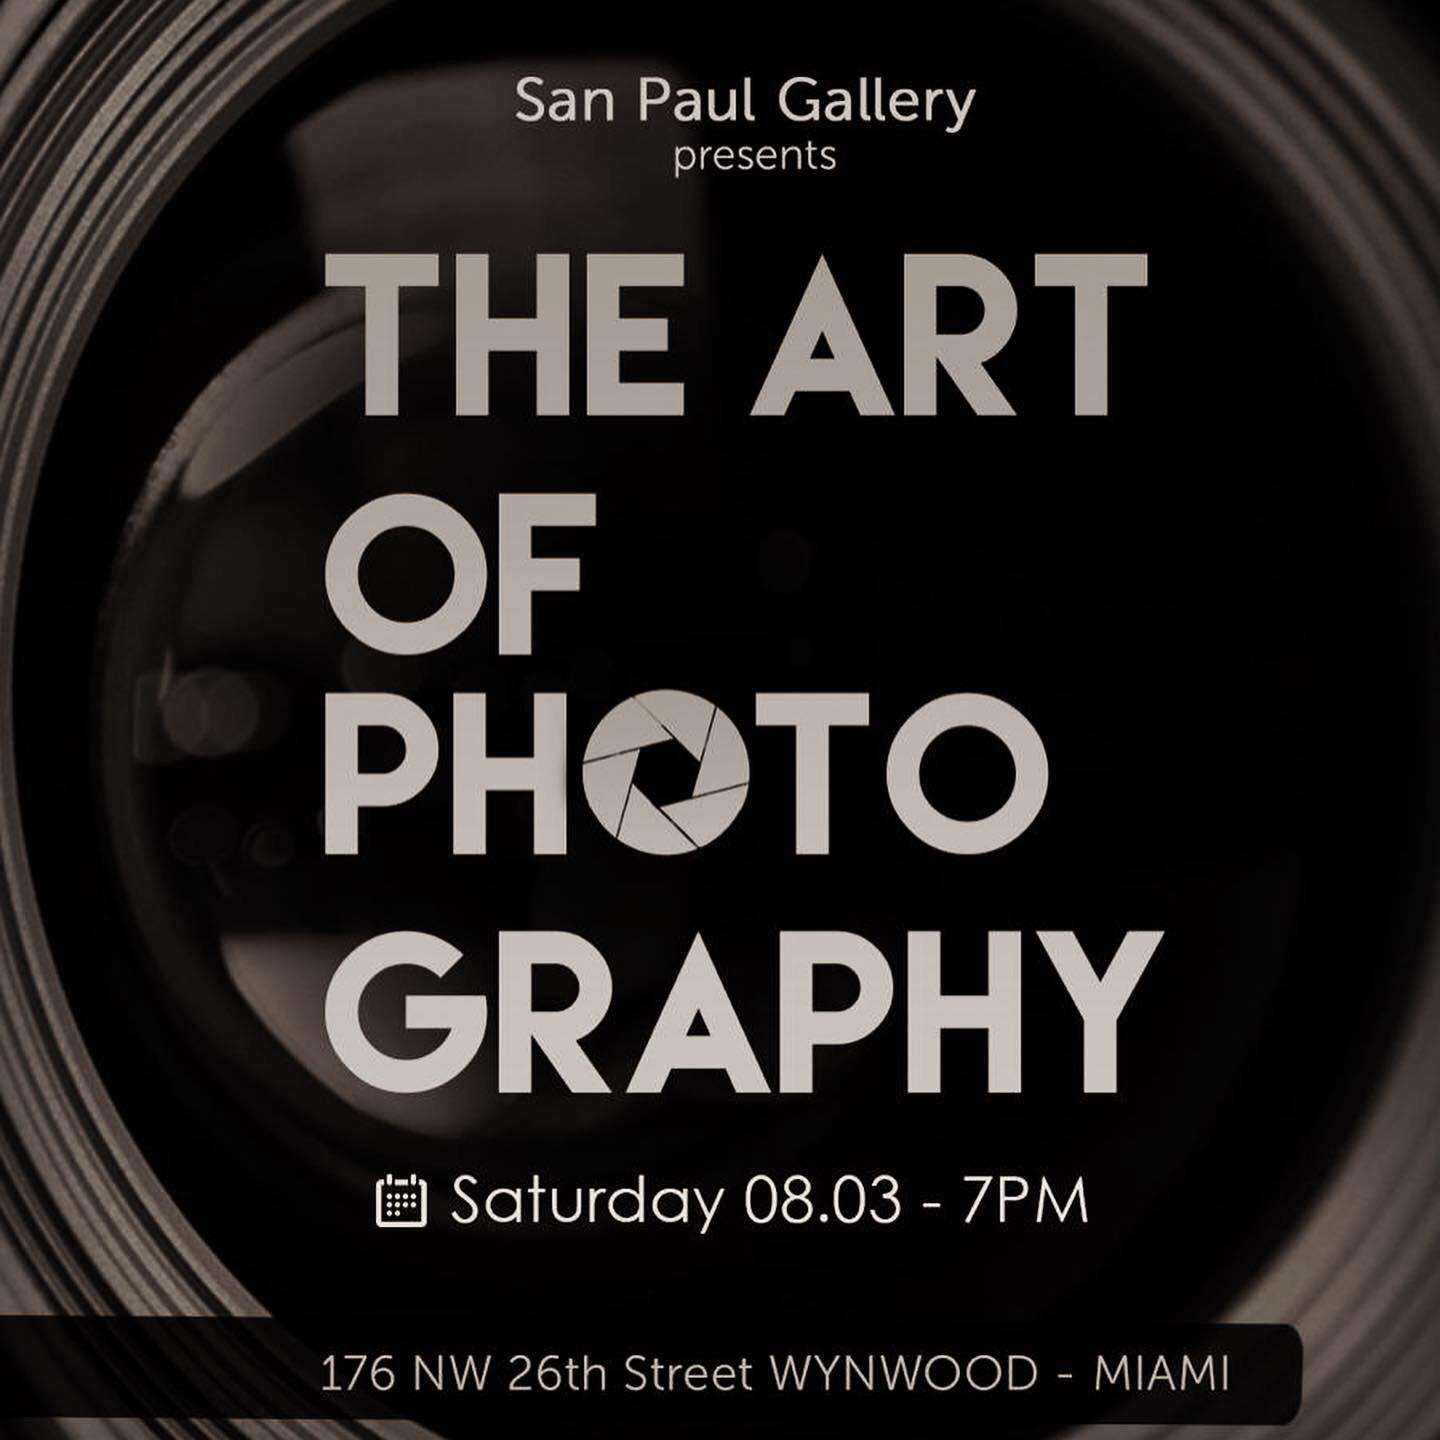 The Art of Photography at San Paul Gallery